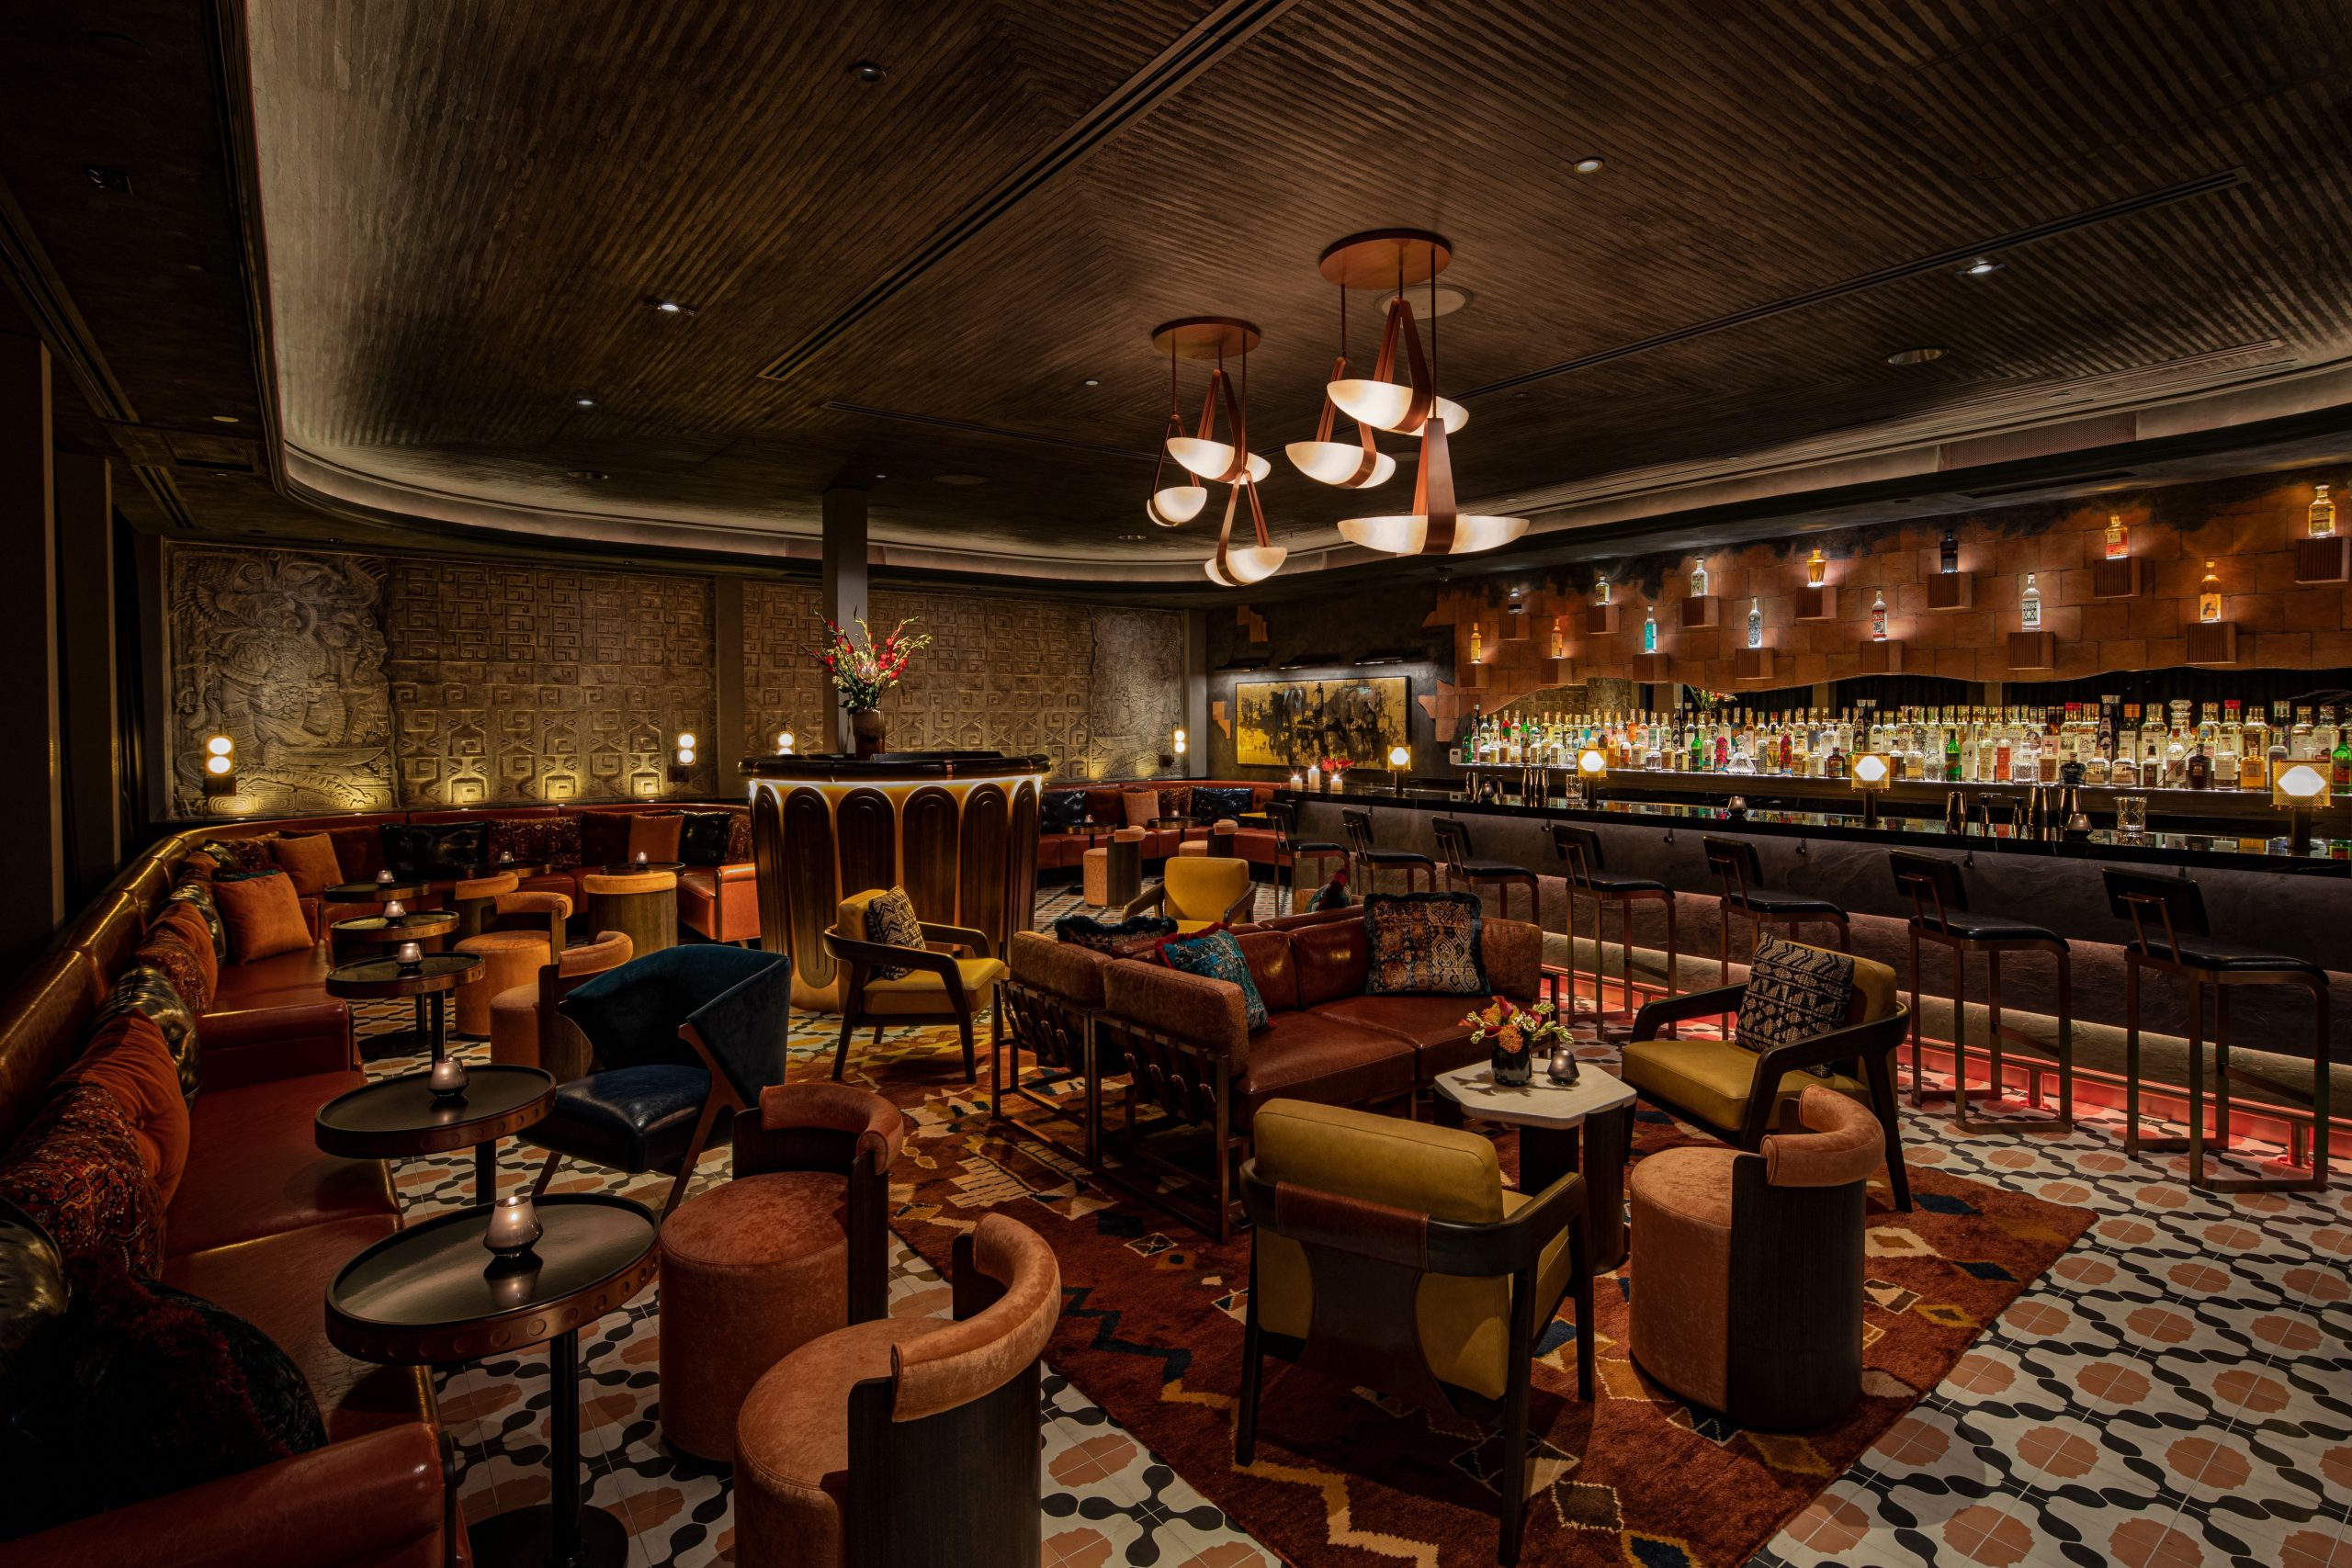 Introducing Mezcalista, an intimate Mezcal lounge at Moxy South Beach